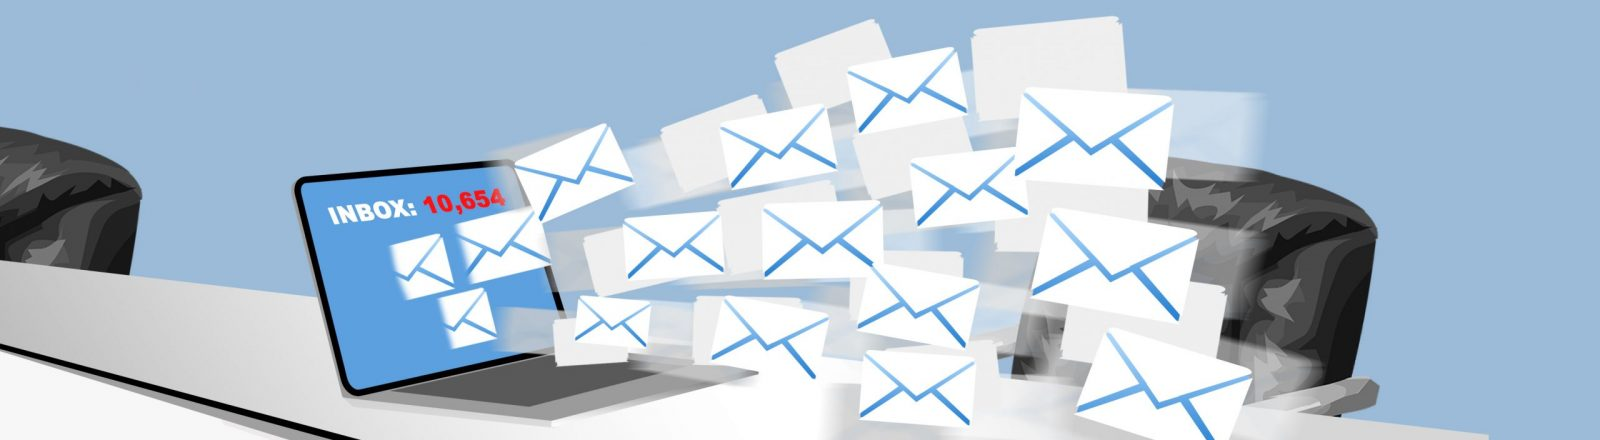 email-overload-support